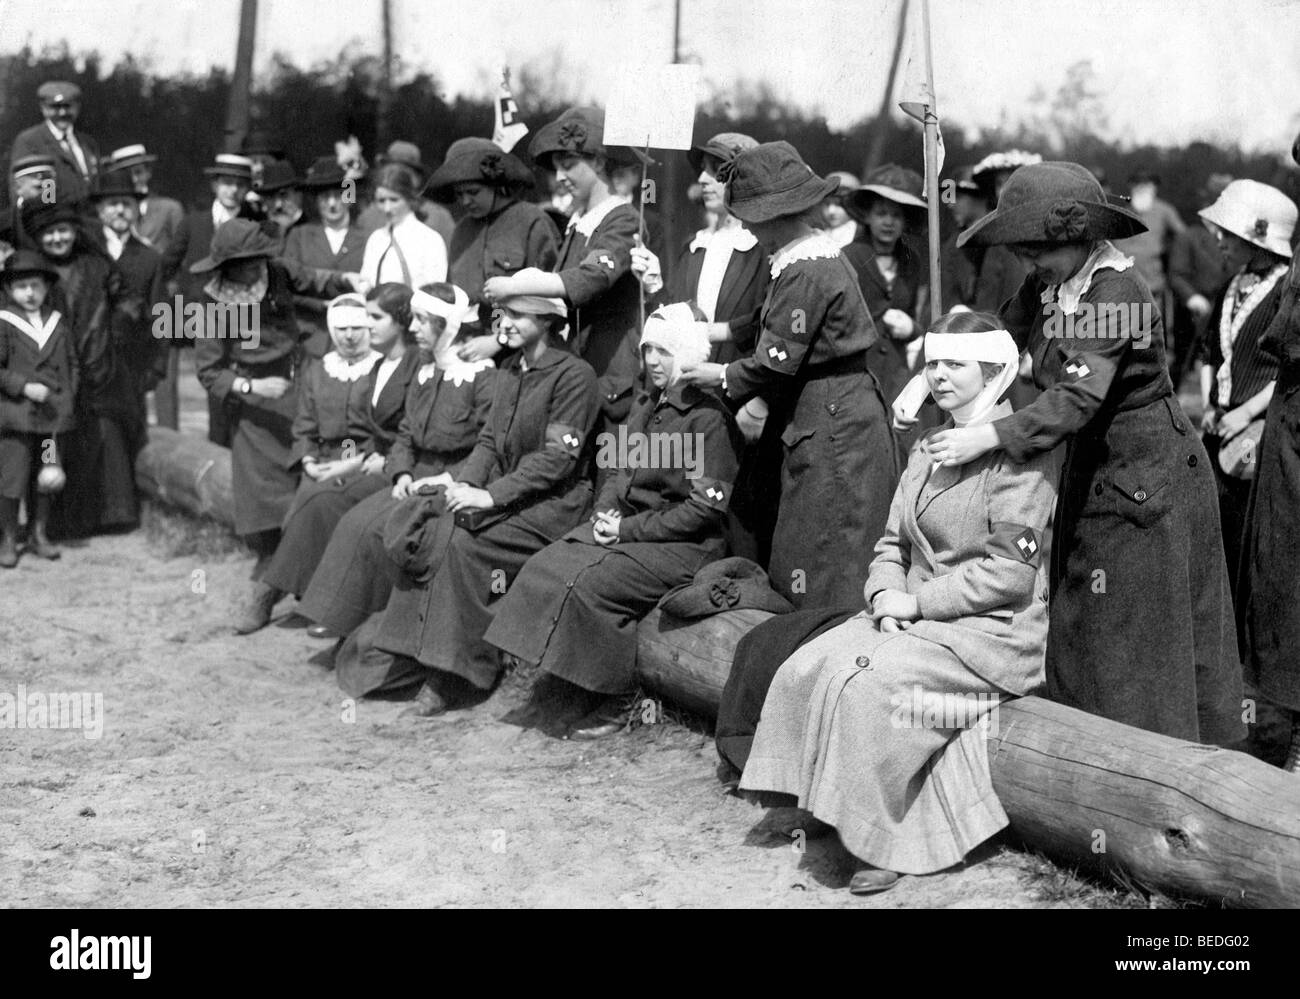 Historic photograph, paramedic training, around 1915 - Stock Image